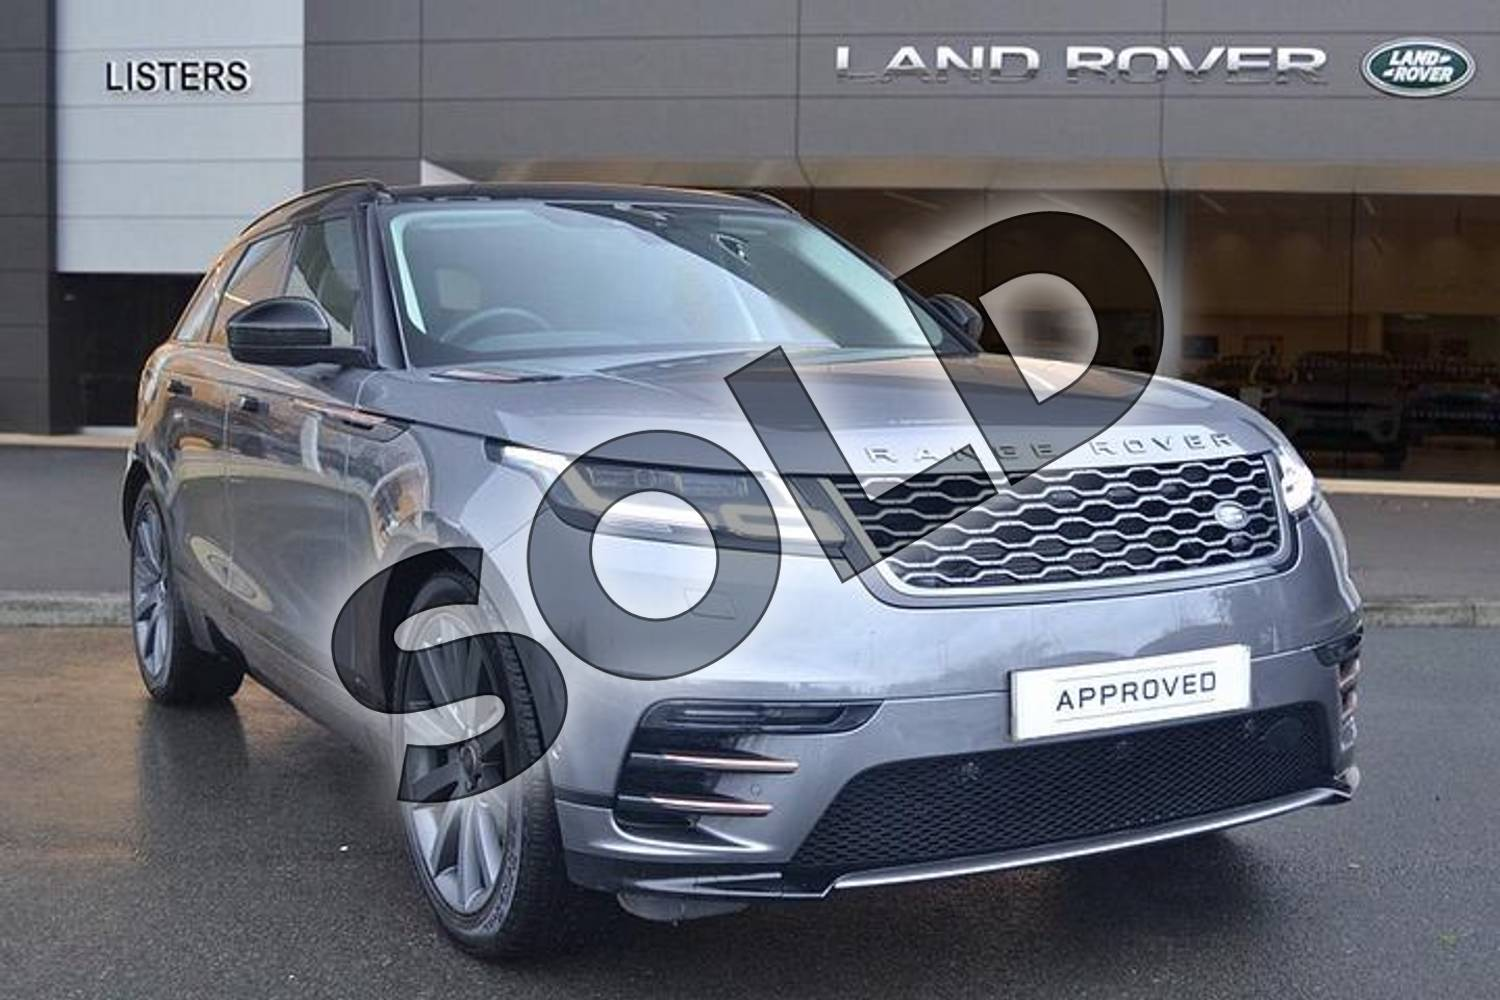 2017 Range Rover Velar Diesel Estate 2.0 D240 R-Dynamic HSE 5dr Auto in Corris Grey at Listers Land Rover Hereford